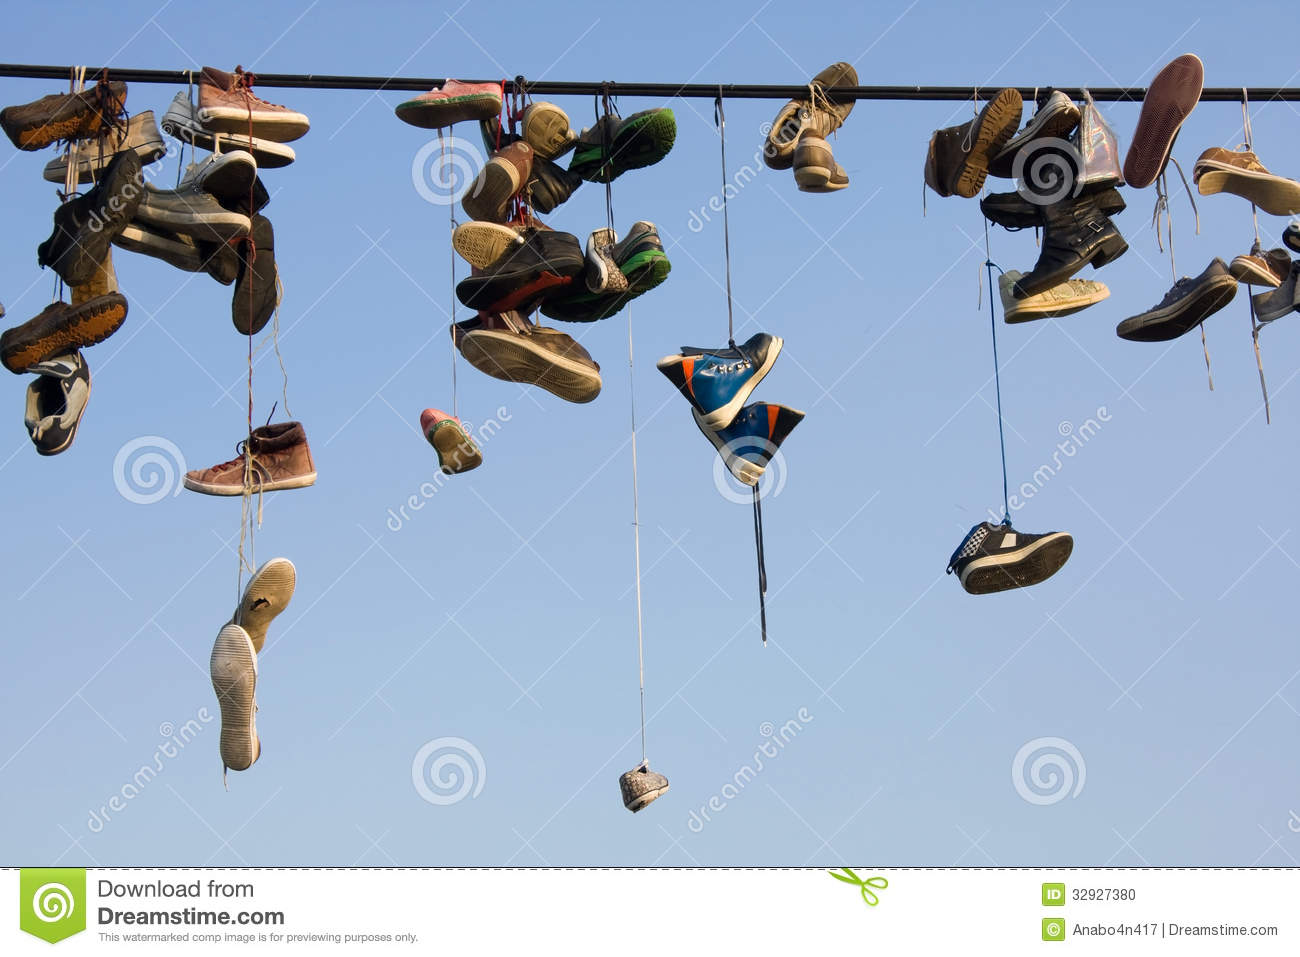 Hanging Photos On Wire old shoes hanging on a wire stock photo - image: 43231008